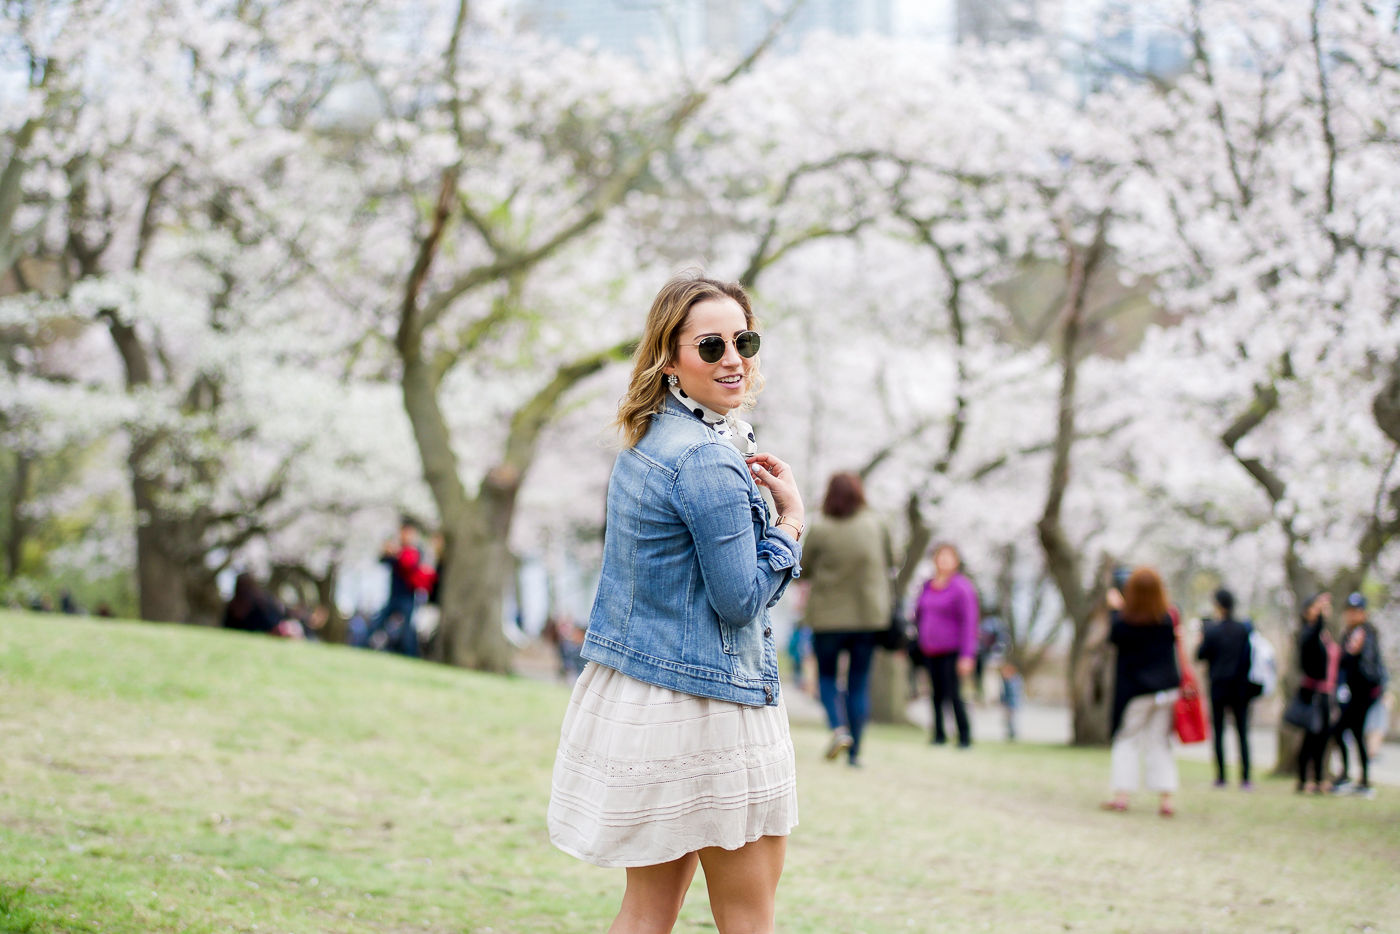 Simple outfit idea of a jean jacket with a dress, which is what Toronto lifestyle blogger, Jackie of something about that wore to see the cherry blossoms at high park